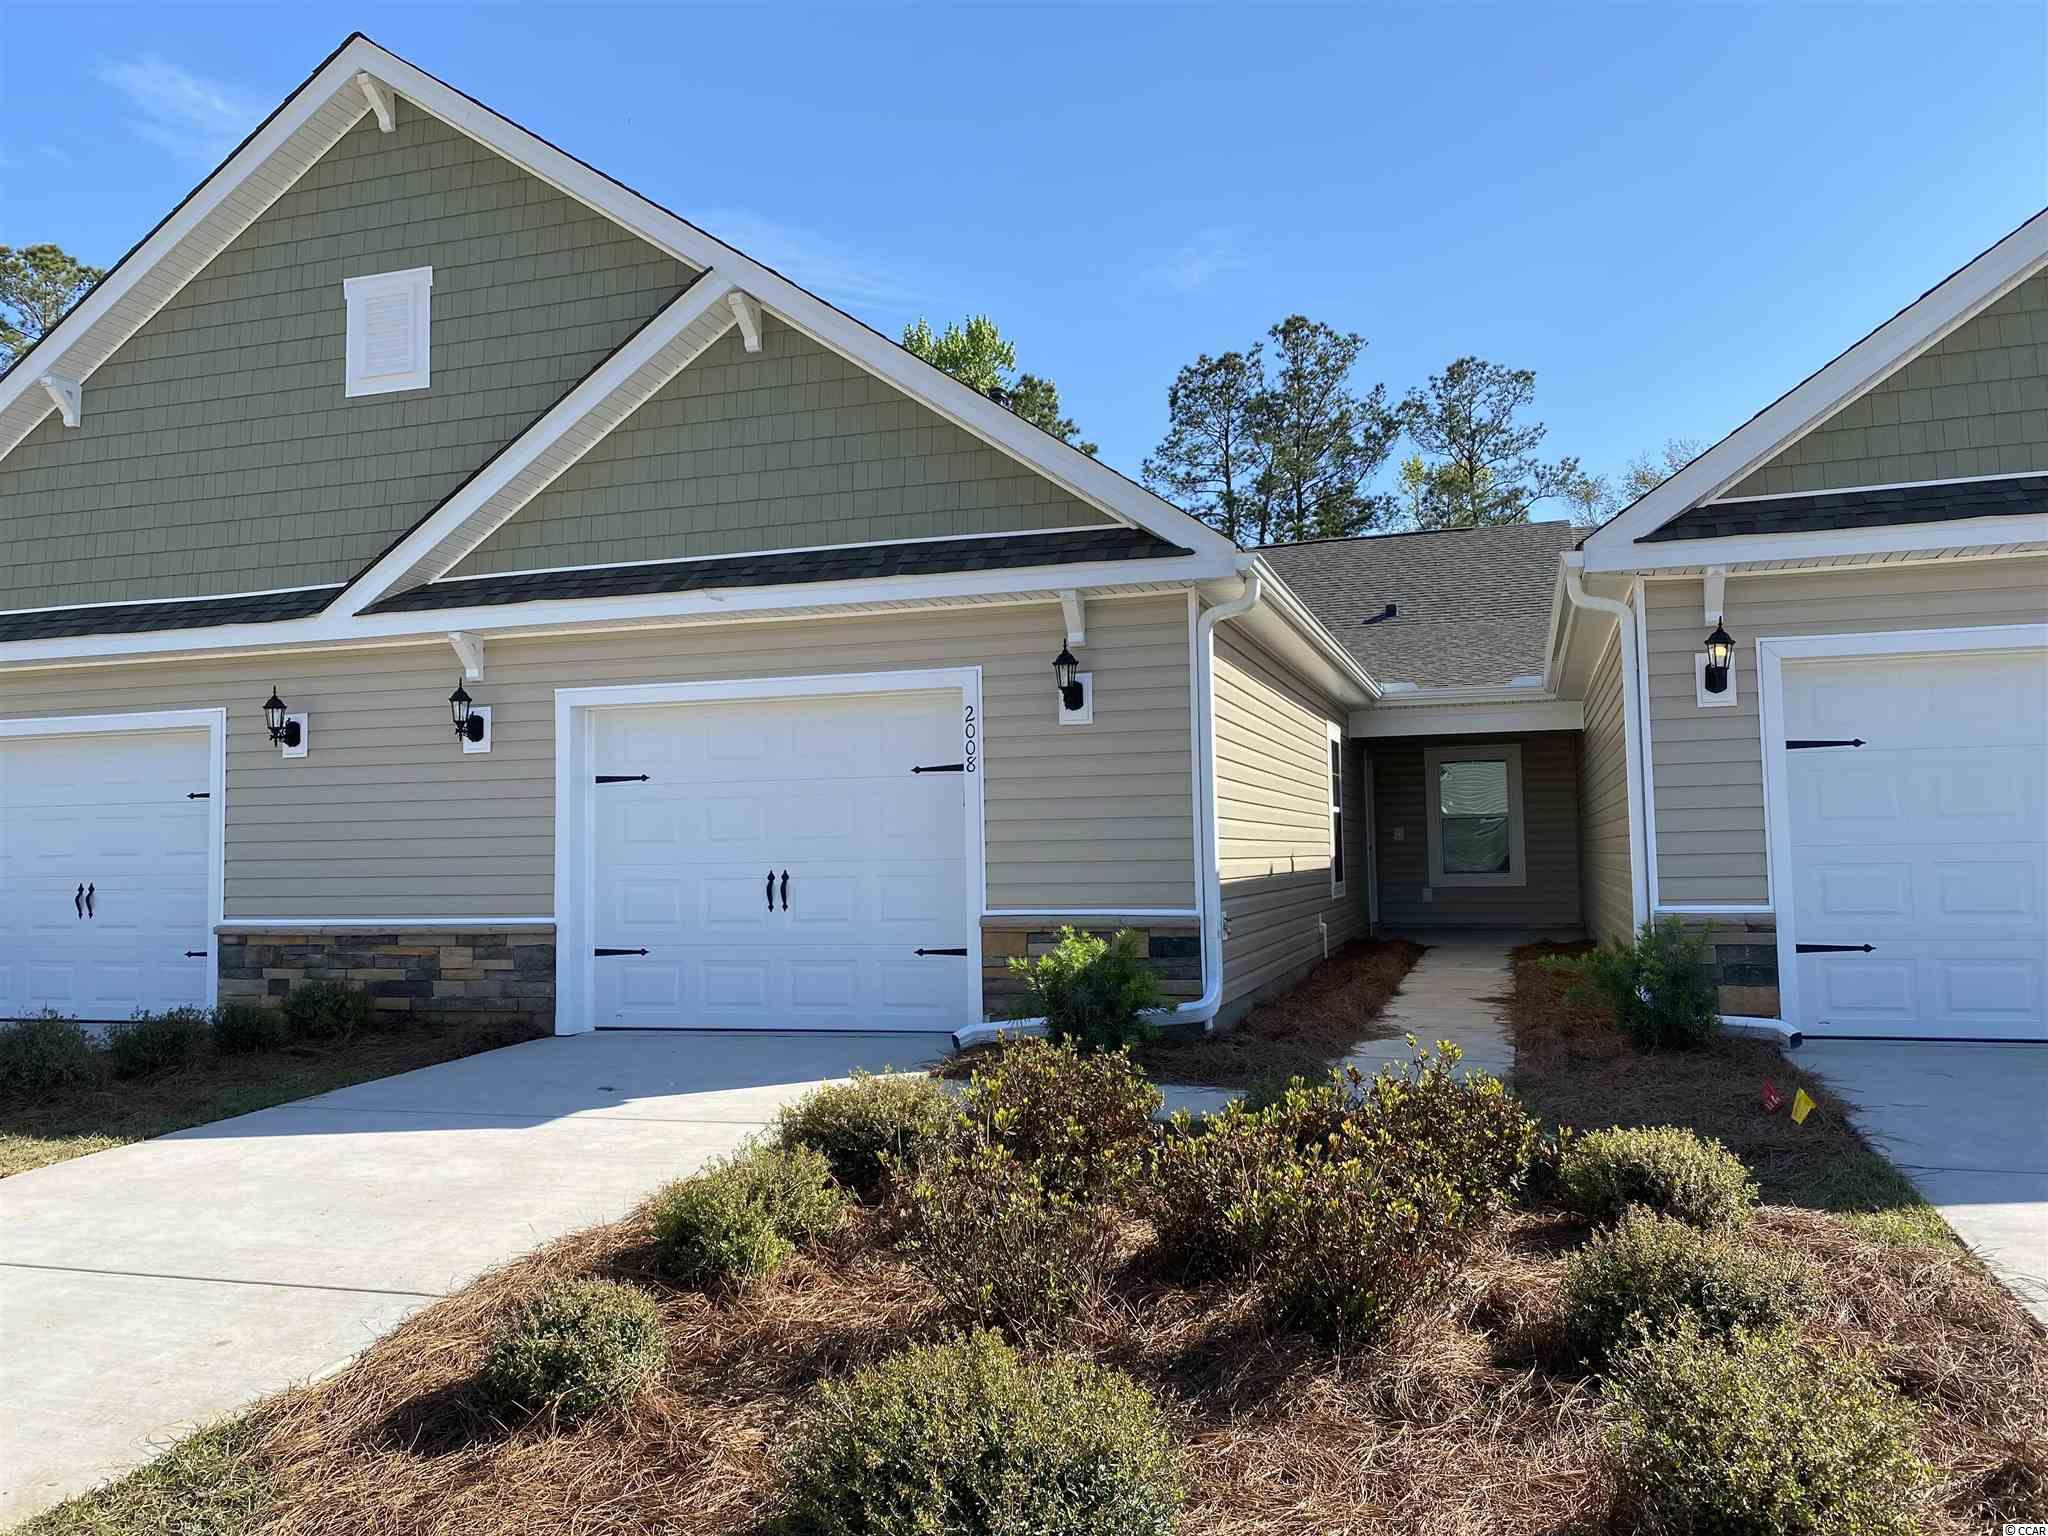 All New Spacious Garden Homes in Palm Lakes offers a maintenance free lifestyle. The Garden Home Section consist of 72 Units with Tree and Pond Views. There are 4 single level villas per Building. All villas are standard with Natural Gas.  Palm Lakes is just 10 Minutes to the Beach and only 5 minutes to the North Myrtle Beach Sports Complex. Easy access to Hwy 9 and 31 for your entertainment, shopping and medical needs. HOA covers Exterior Insurance, Lawn Care/Maintenance, Weekly Trash Pickup, Power Washing, Internet/Cable, Pest Control/Termite Bond, Gorgeous Pool, Club House and Fitness Room.